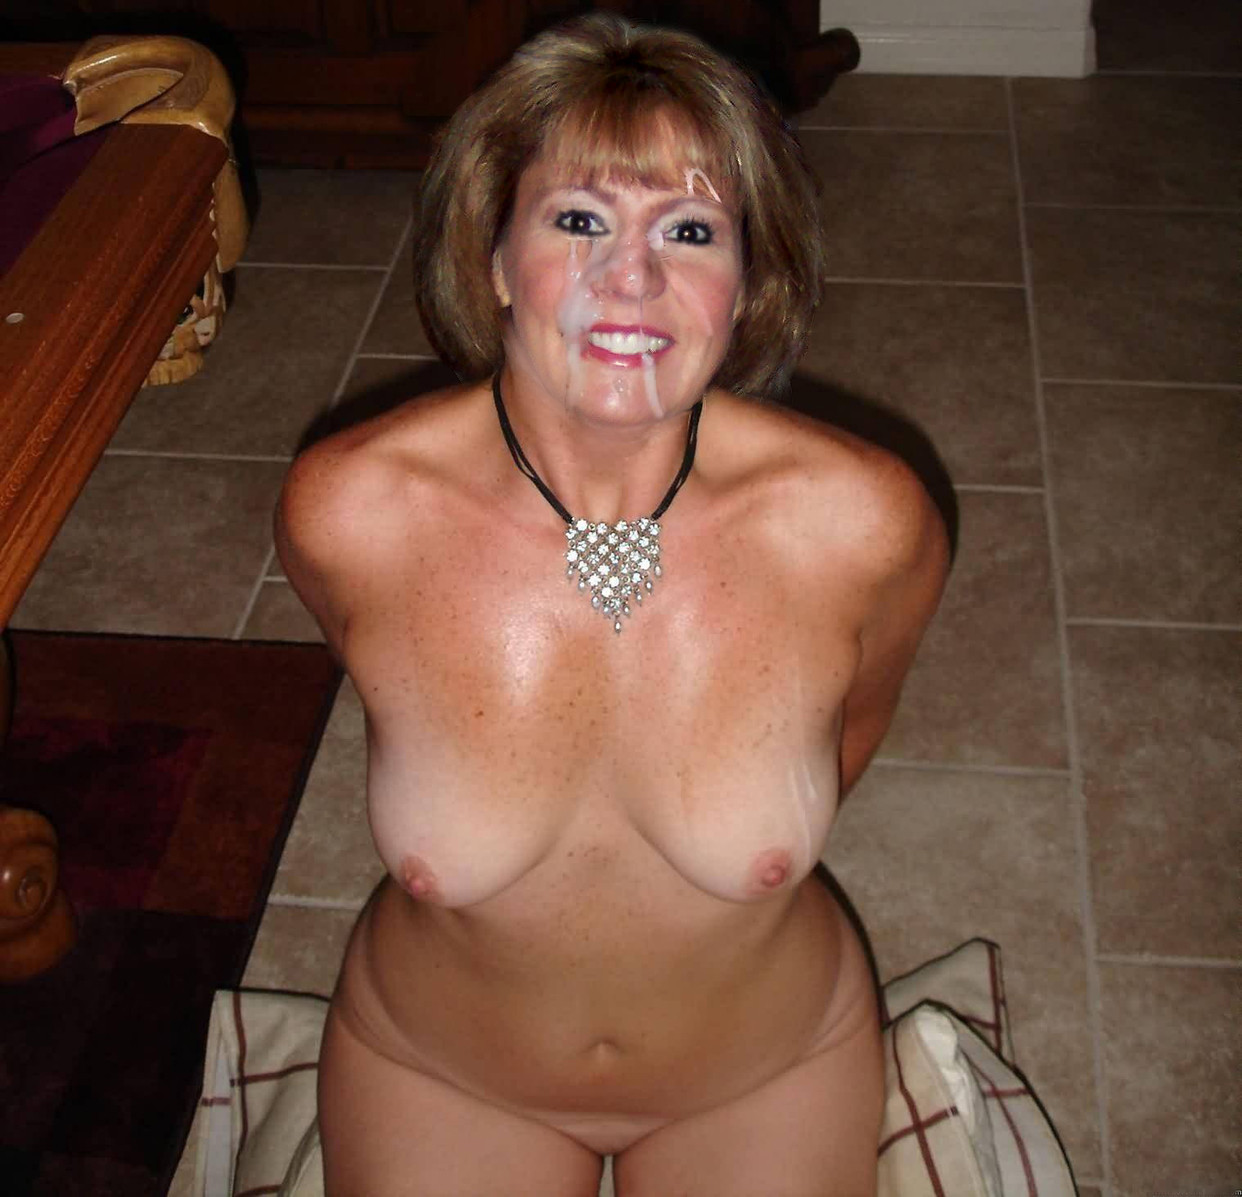 wife forced naked in front of friends